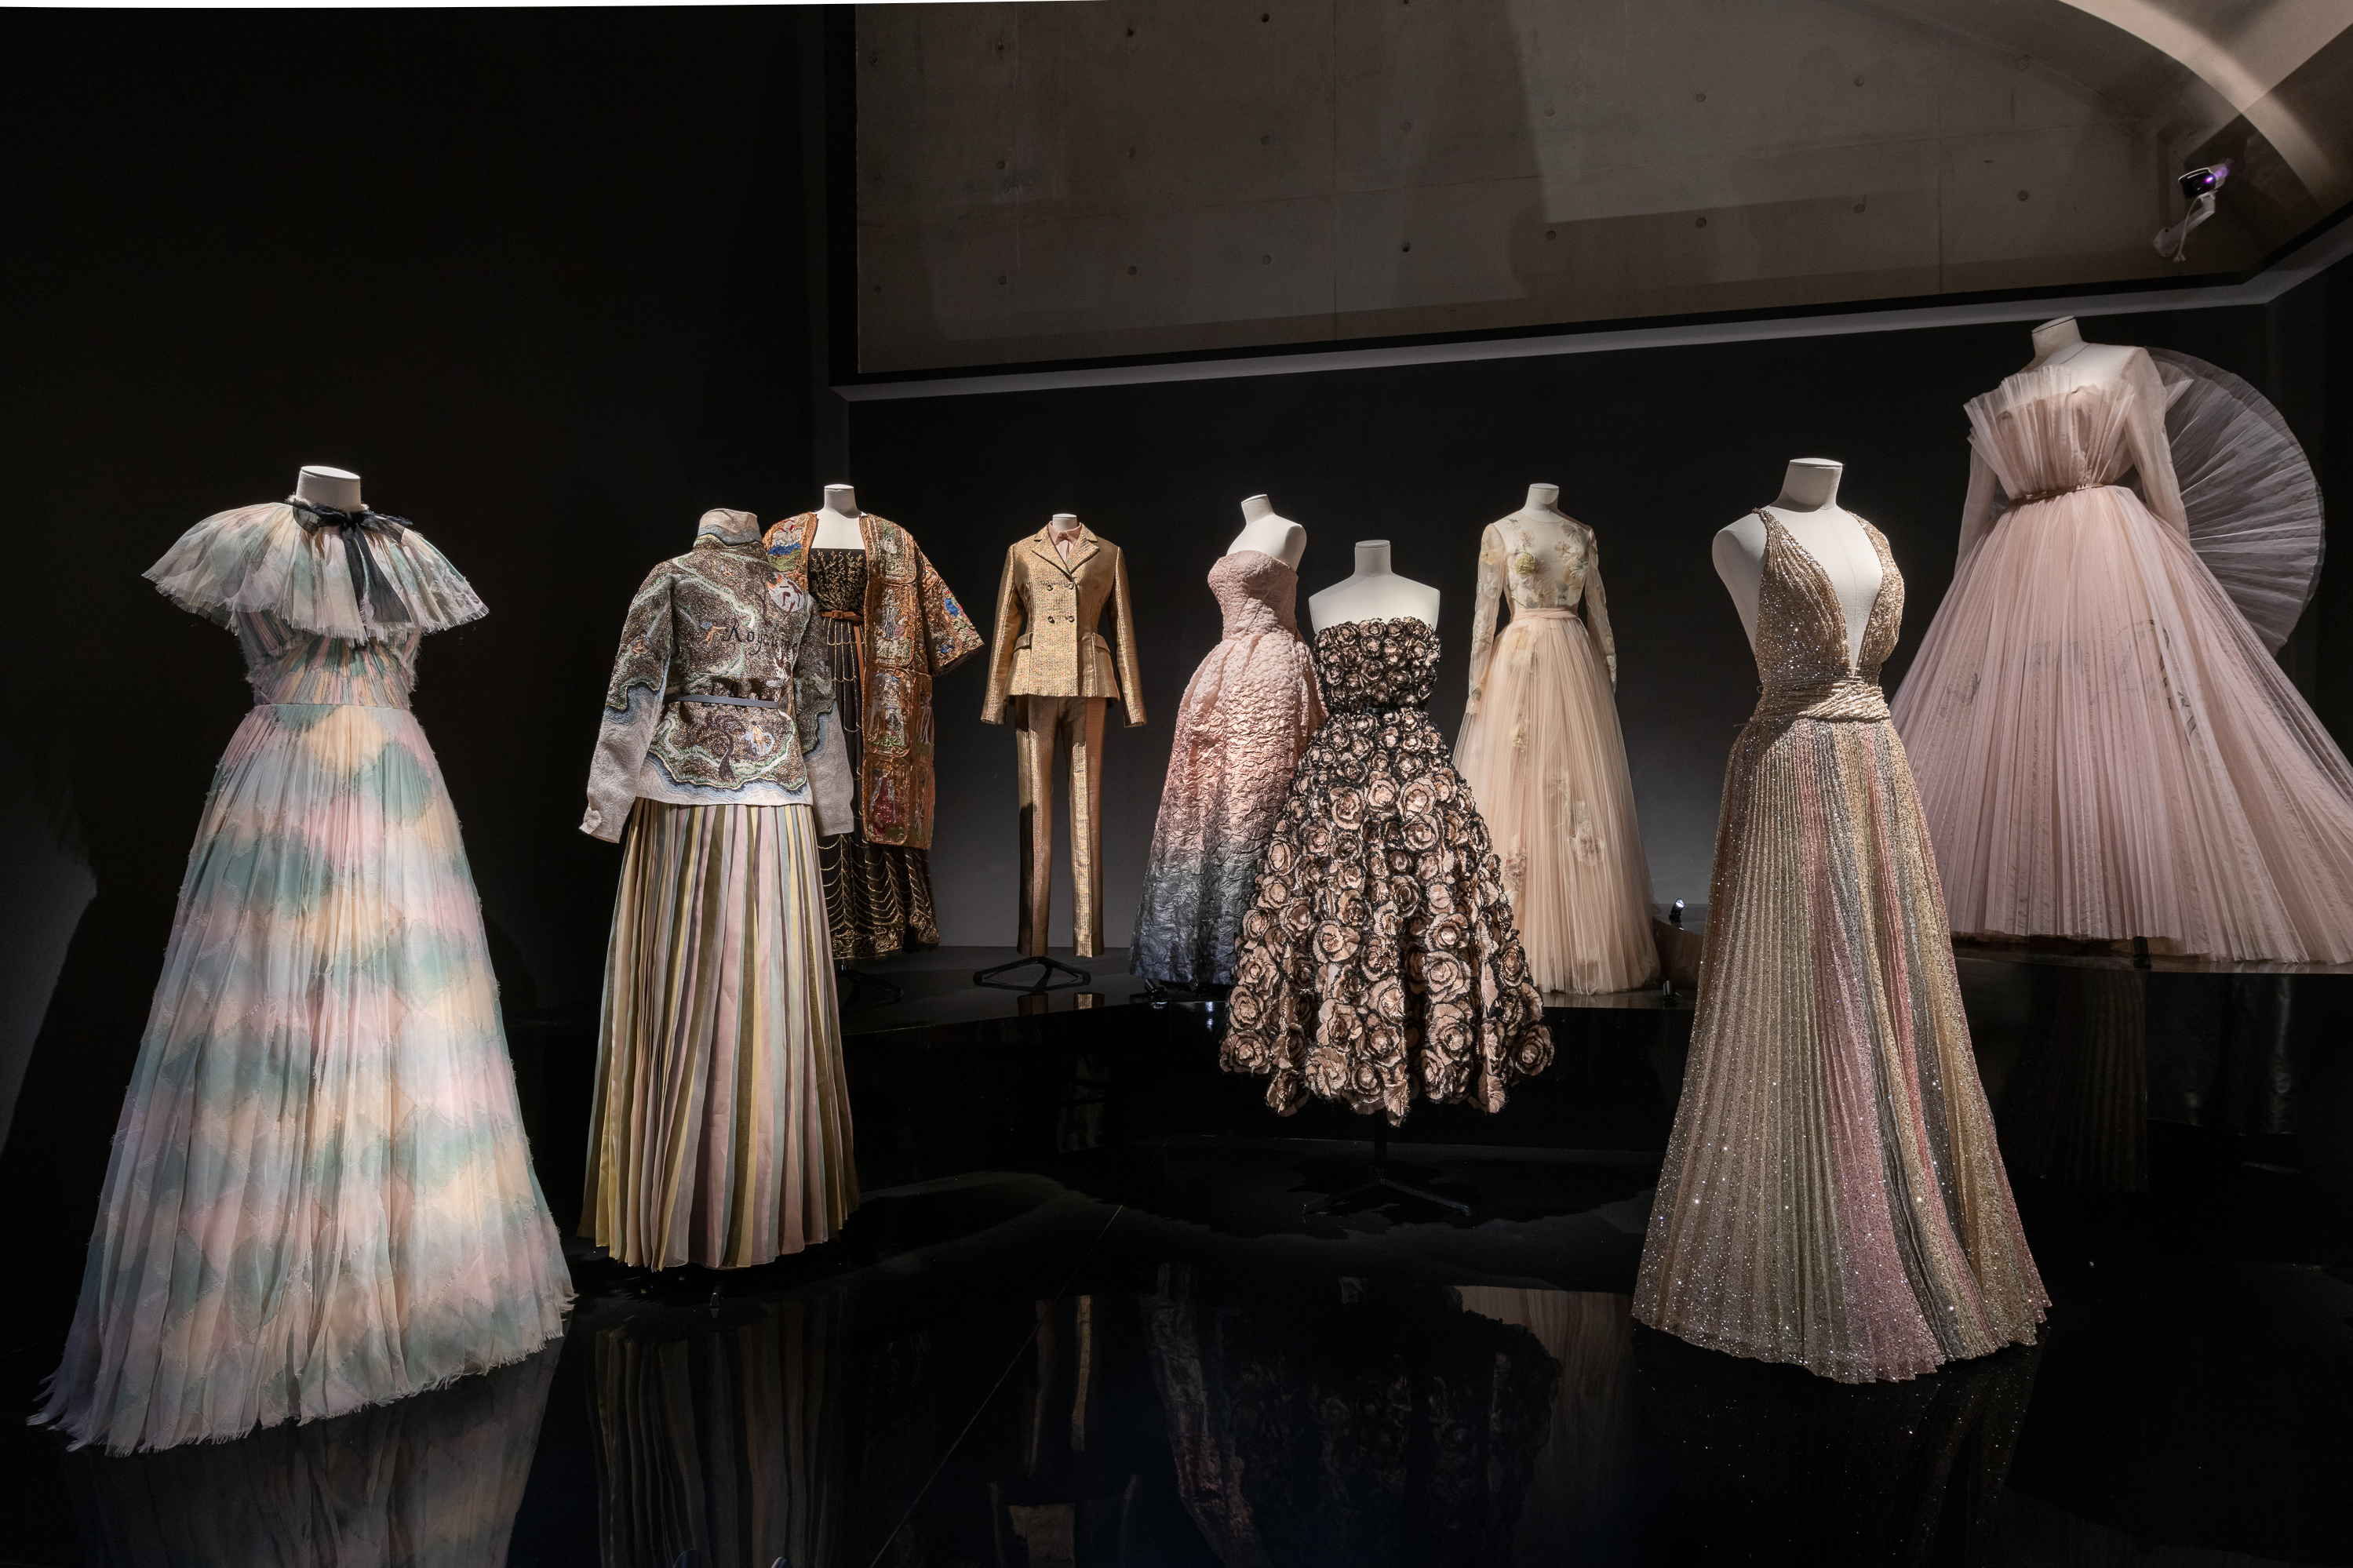 An In-Depth Look At Christian Dior's <i>Designer of Dreams</i> Exhibition In Shanghai